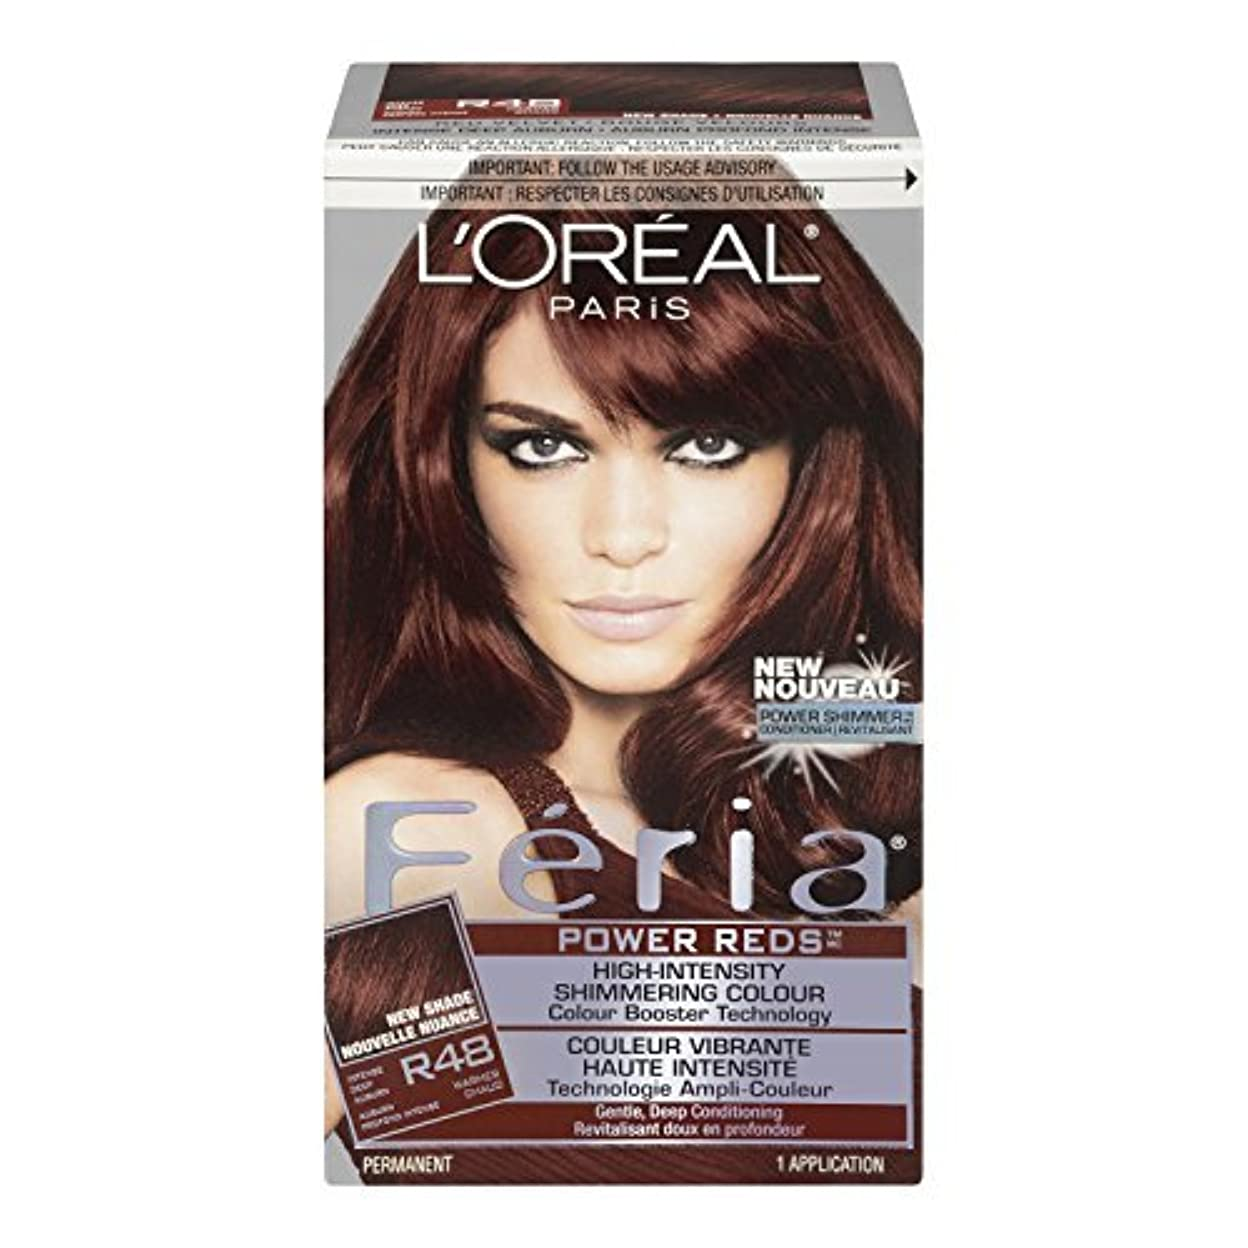 ずるい世論調査パイプL'Oreal Feria Power Reds Hair Color, R48 Intense Deep Auburn/Red Velvet by L'Oreal Paris Hair Color [並行輸入品]